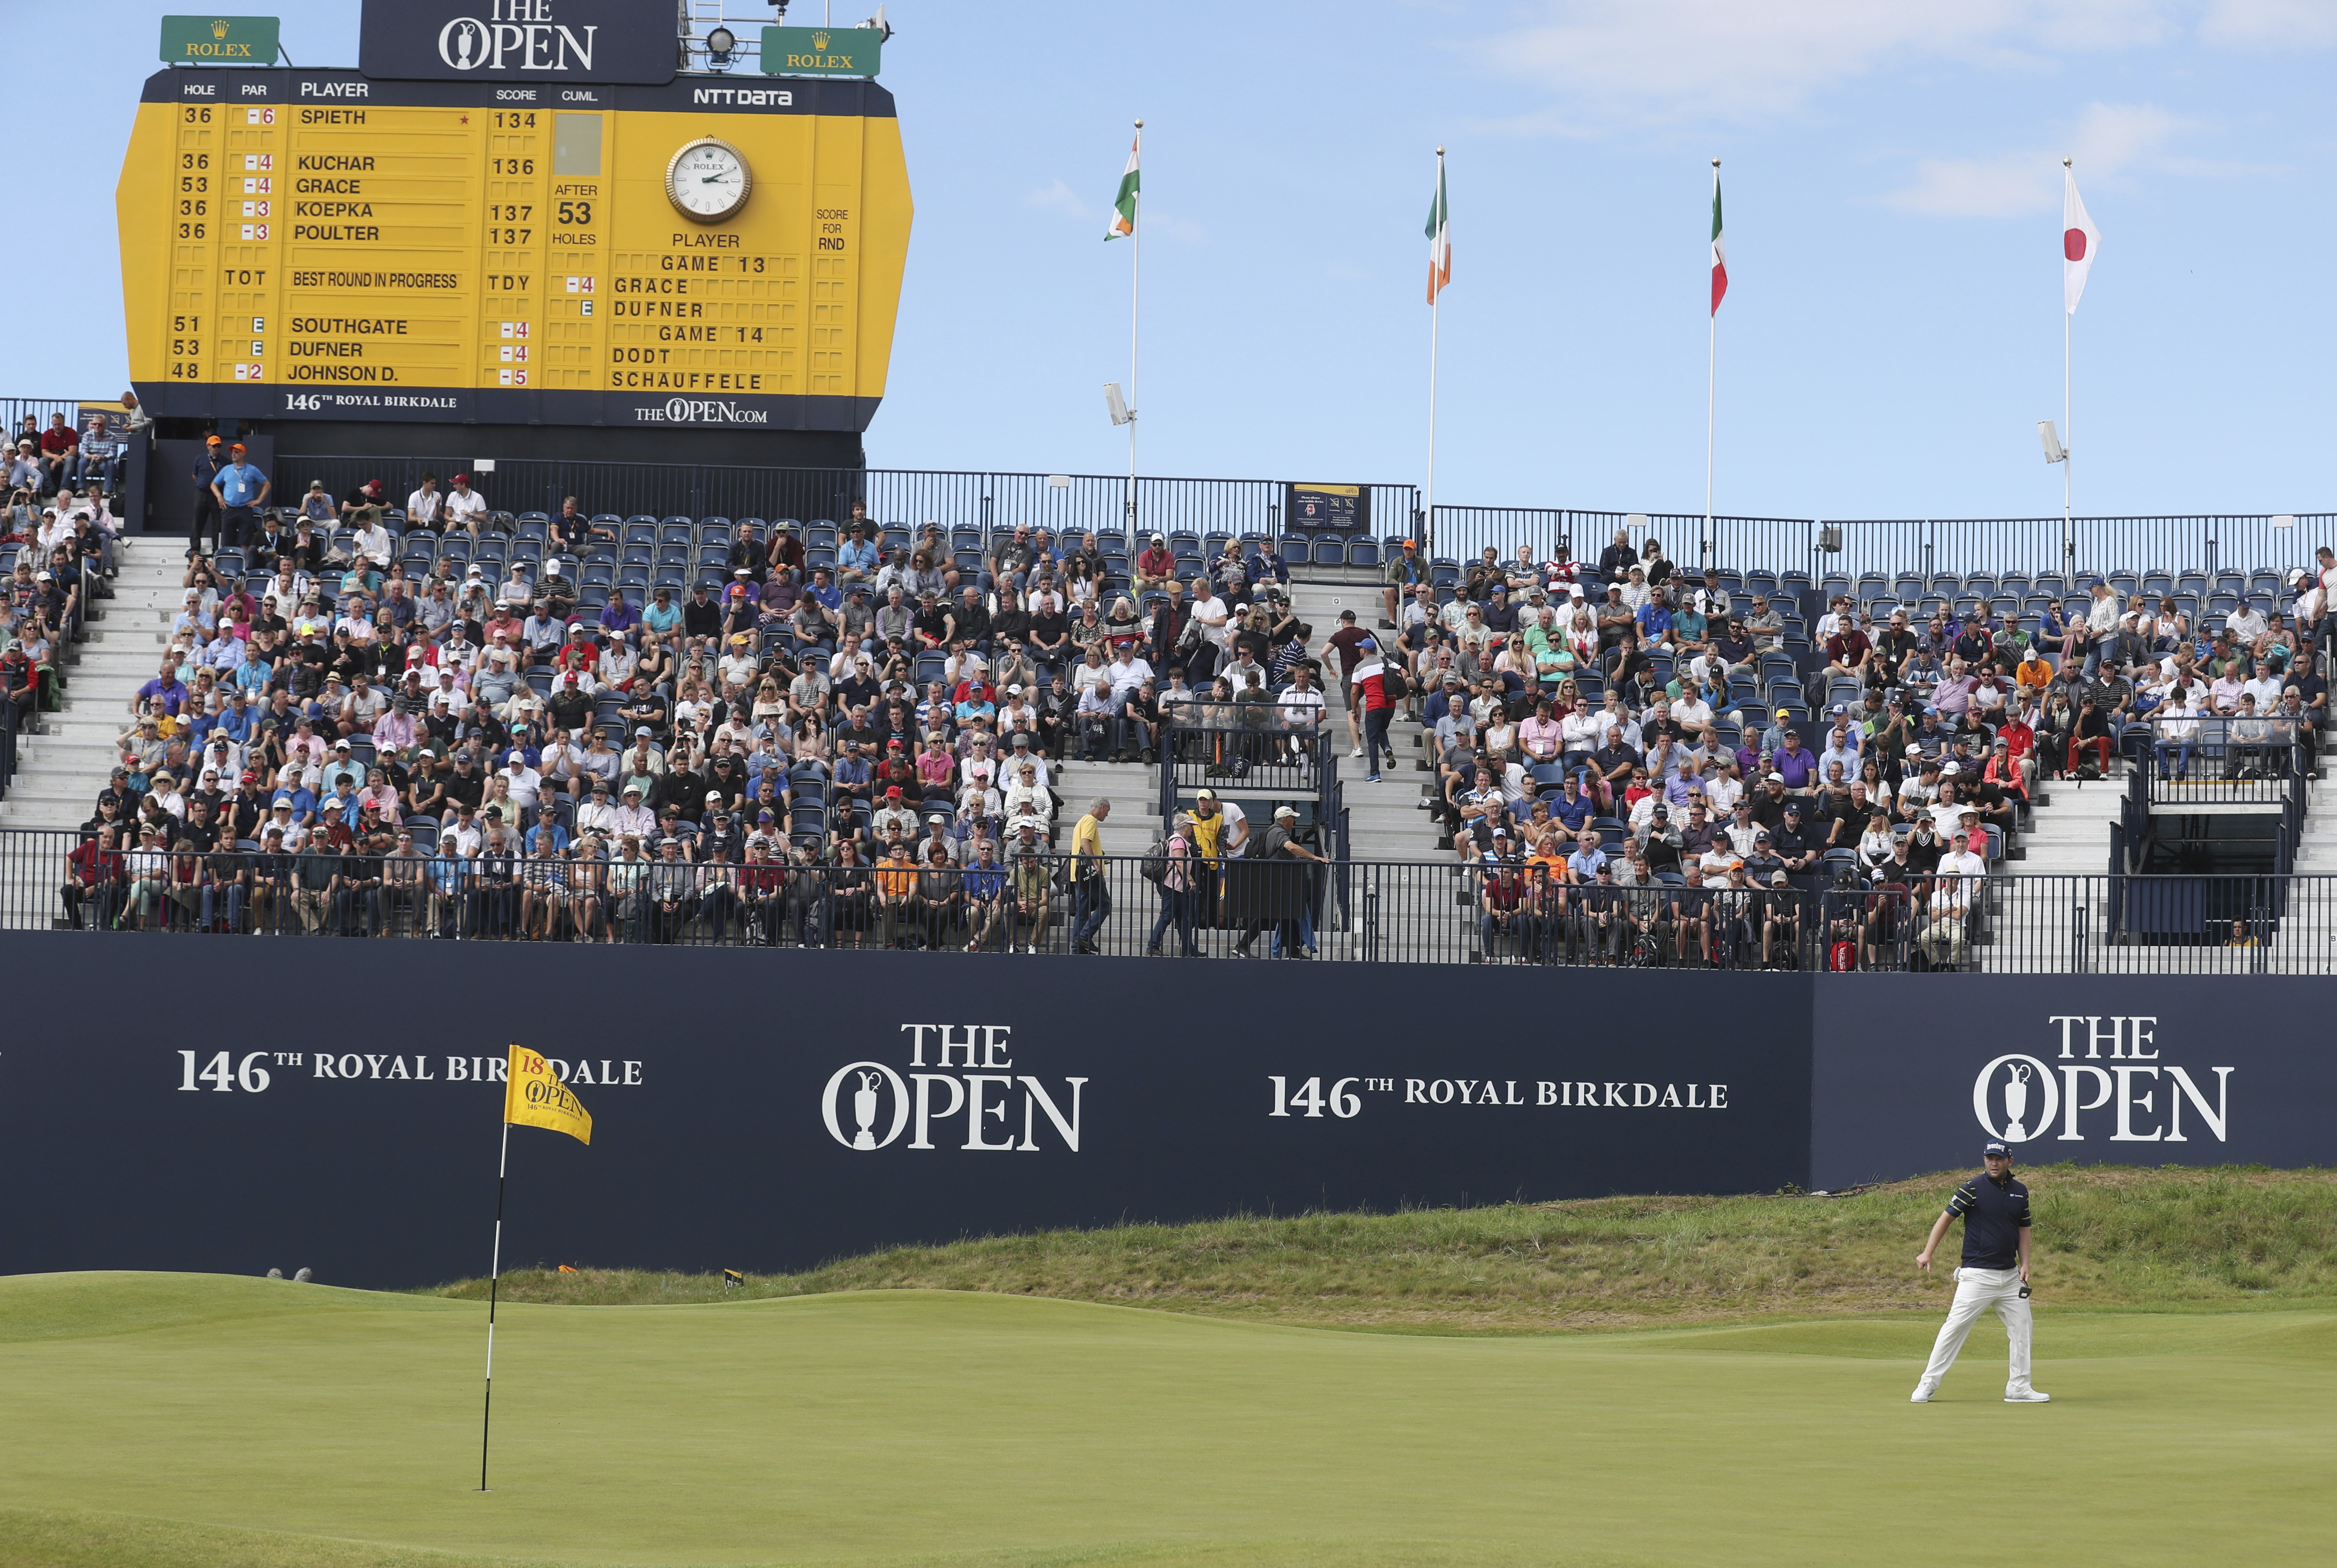 South Africa's Branden Grace lines up a putt on the 18th green during the third round of the British Open Golf Championship, at Royal Birkdale, Southport, England, Saturday July 22, 2017. (AP Photo/Peter Morrison)